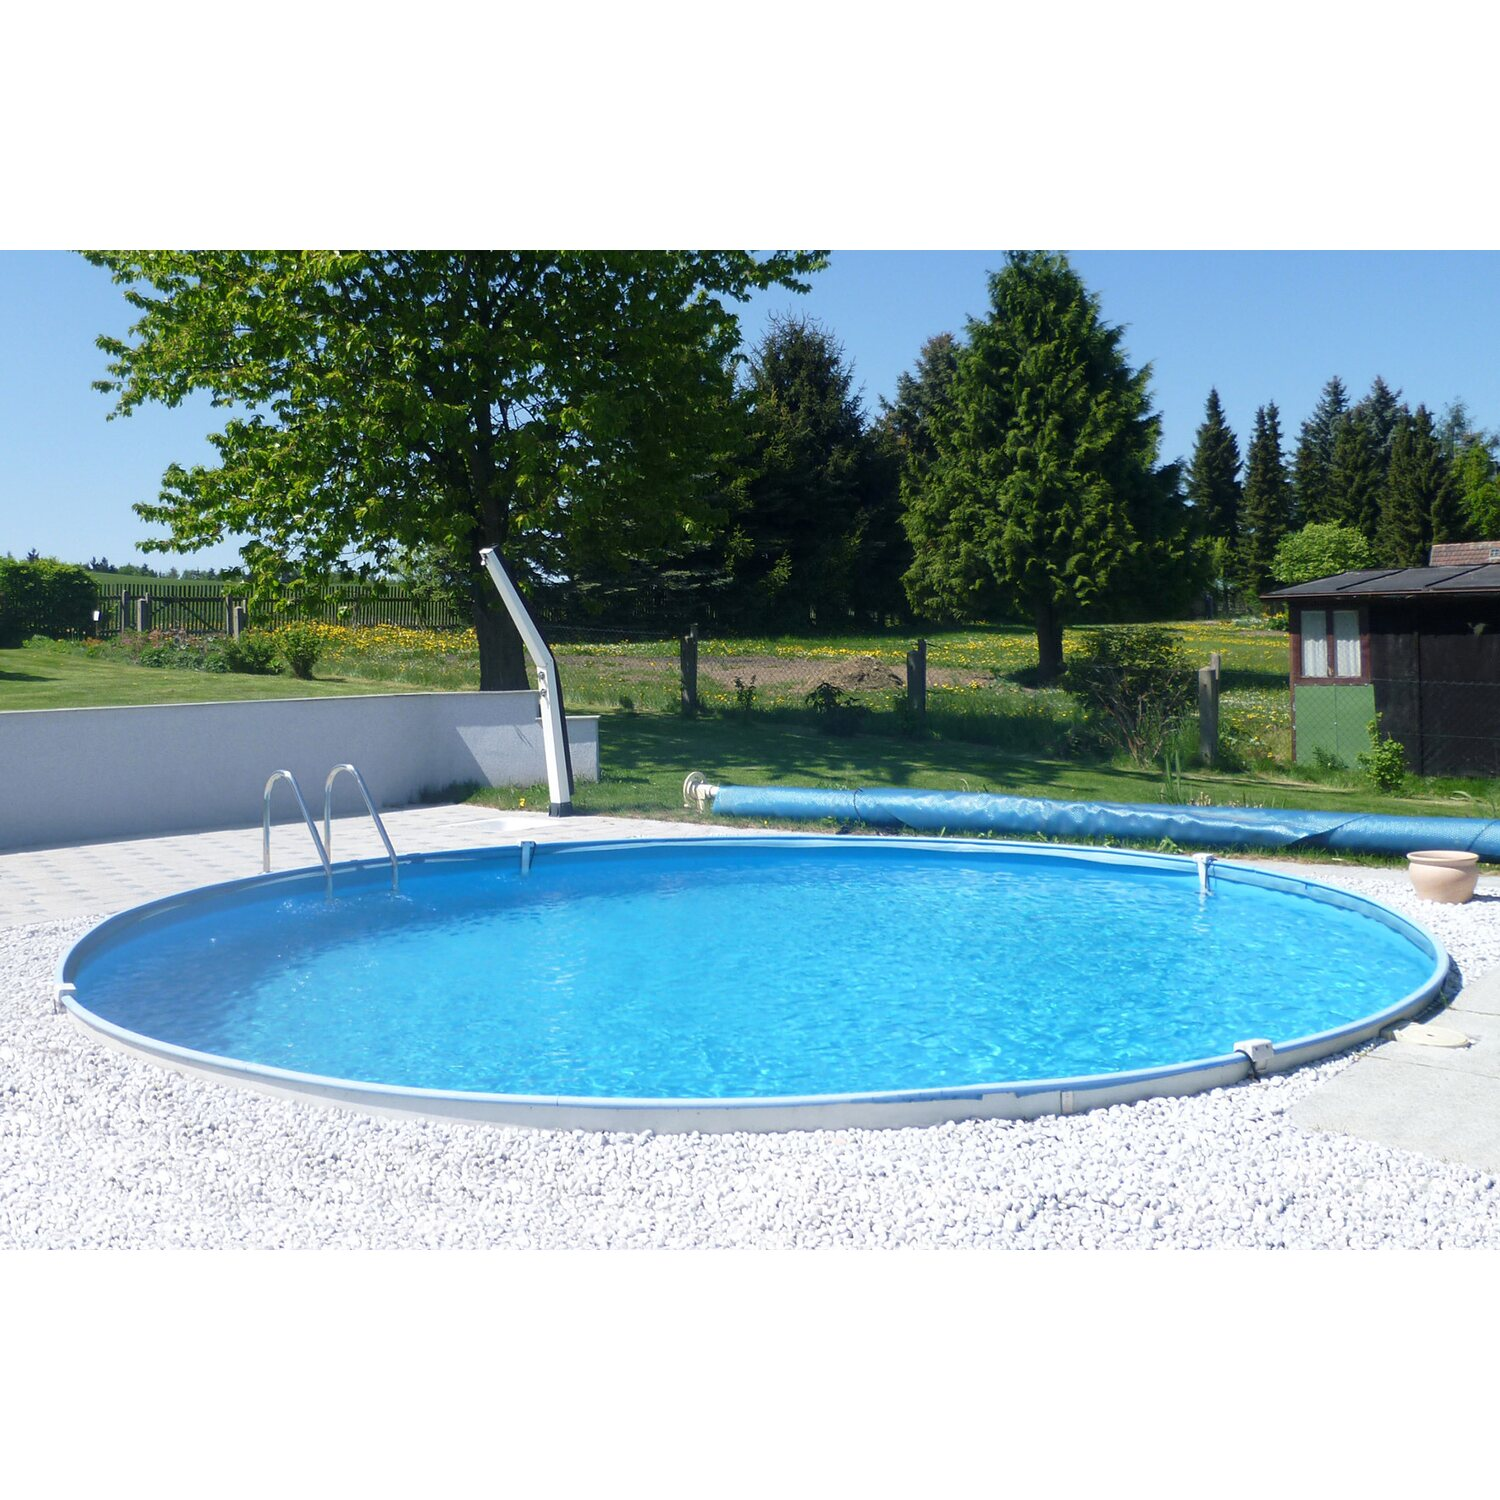 Medence szett summer fun baja ac lfal be p thet for Stahlwandbecken pool einbau